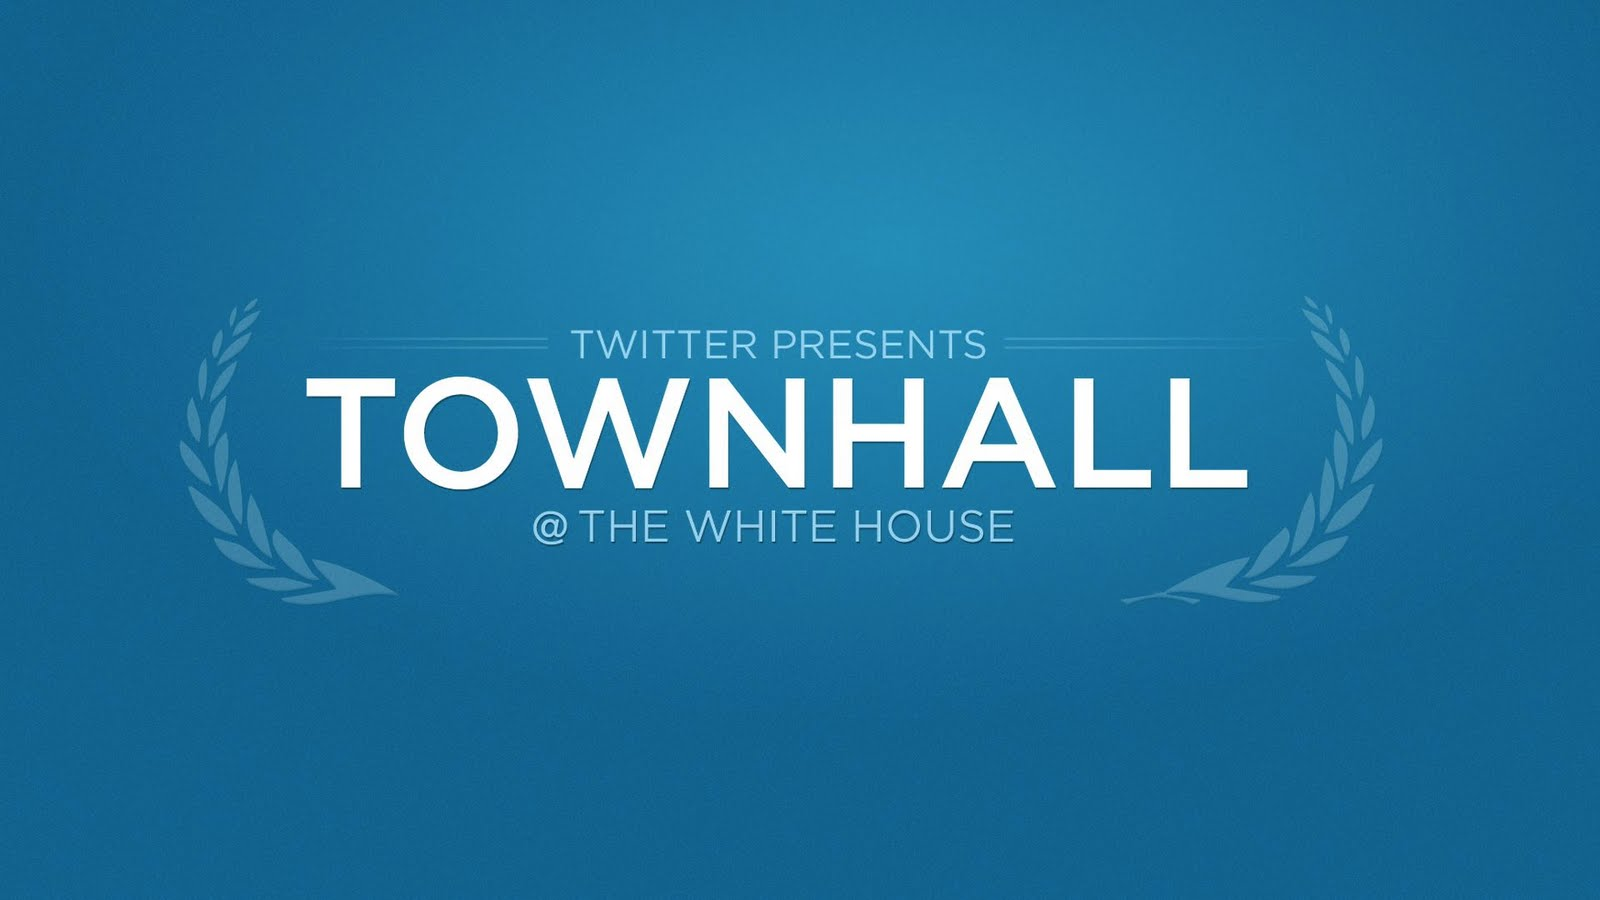 Twitter Town Hall | Twitter Blogswhite hall town